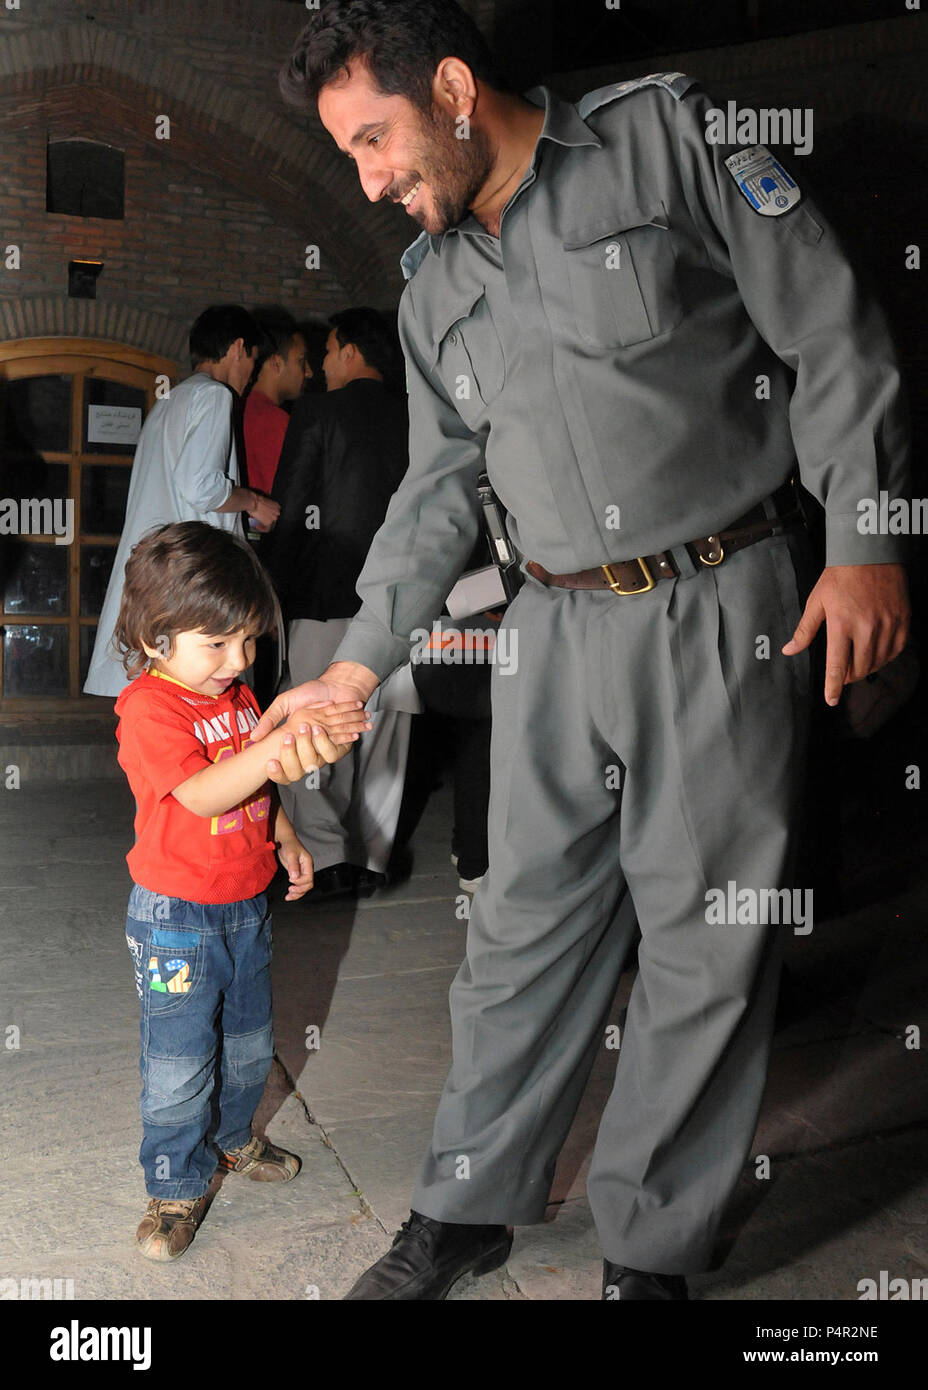 KABUL -- (May 21, 2012) An Afghan National Police officer slaps hands with an Afghan child during the 1st Police Film Festival held at the Babur Gardens, May 21.  The week-long festival was designed to open a cultural dialogue between the ANP and Afghan community that will help improve communication and aid in shaping new, positive perceptions of the Afghan police force.  U.S. Navy - Stock Image